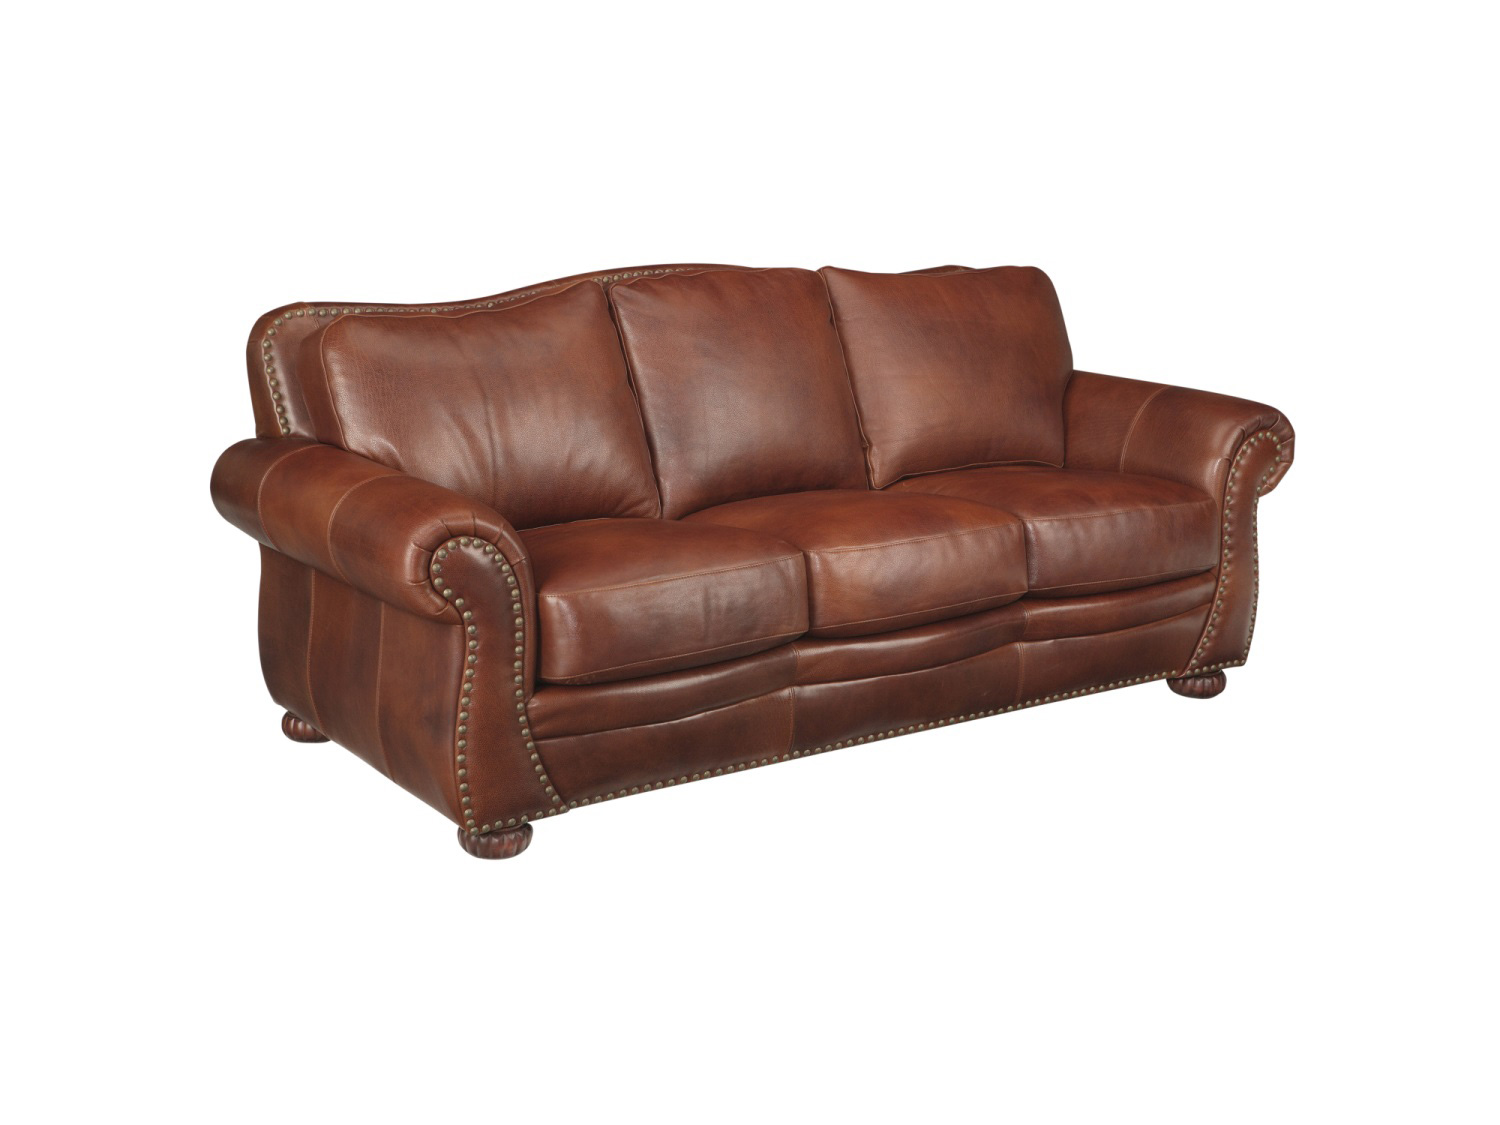 Mississauga Furniture Sofas Page 4 Cozy Living Furniture Mississauga